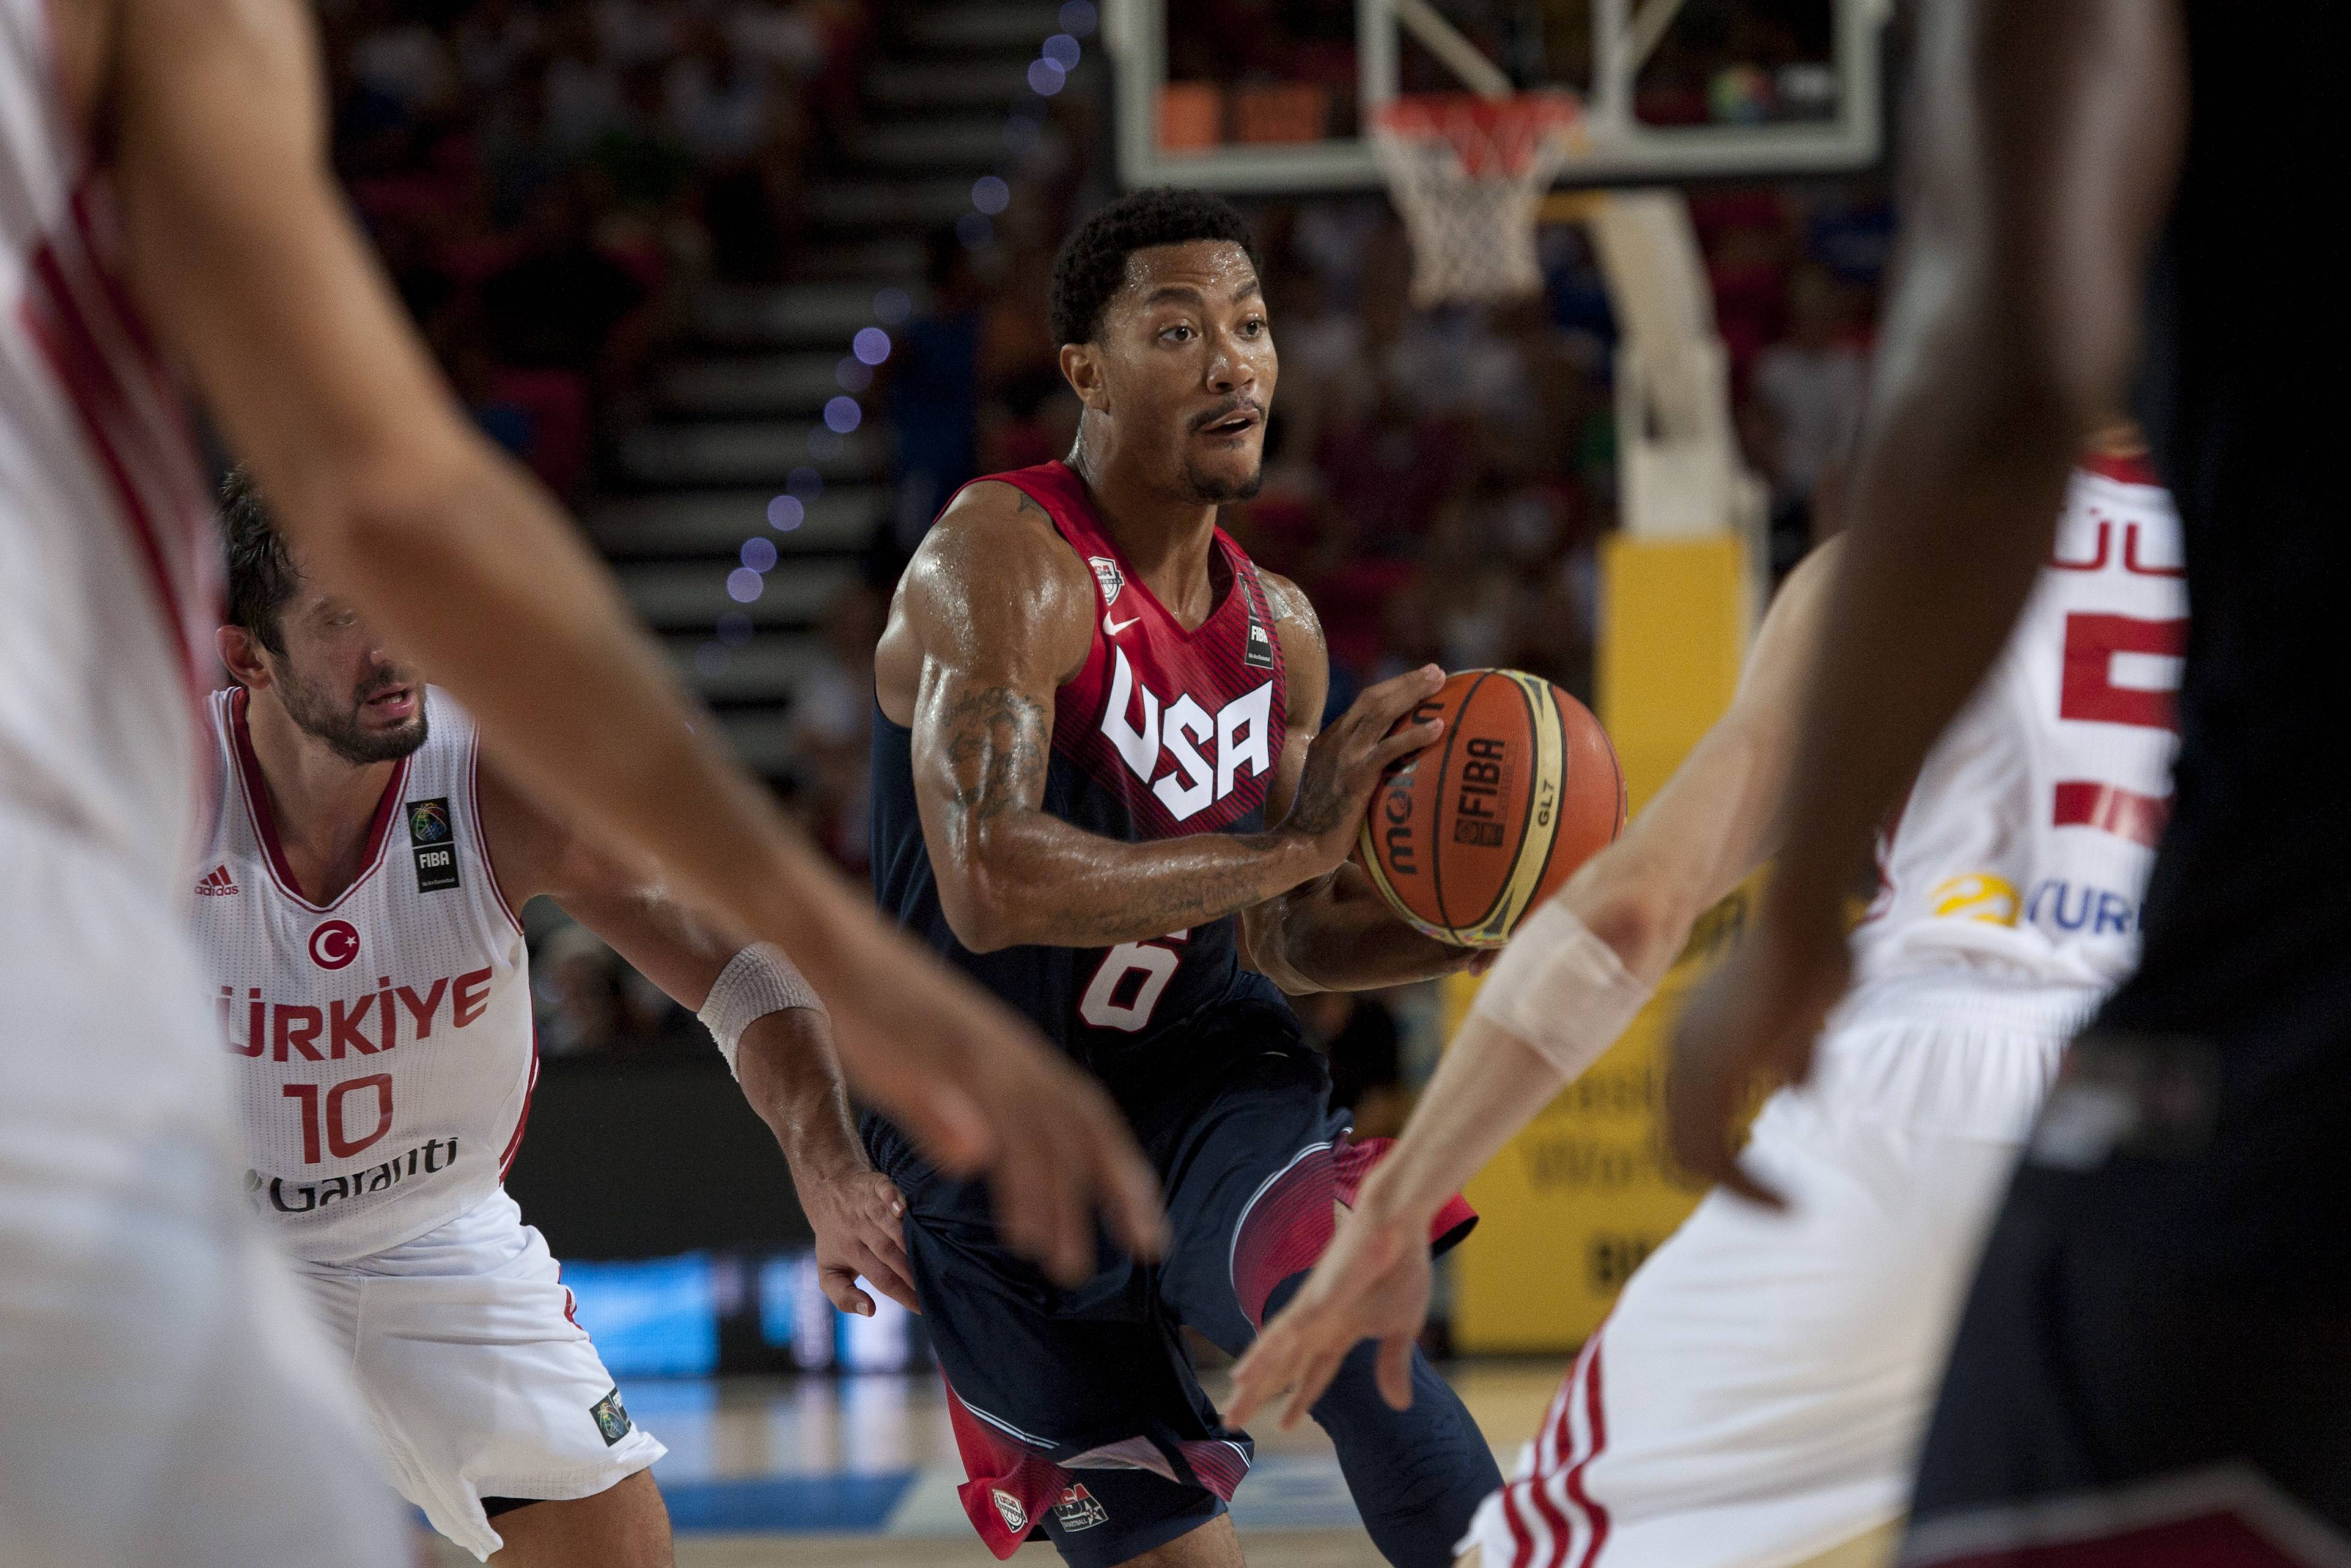 Bulls star Derrick Rose controls the ball for the U.S. during the Group C Basketball World Cup match, against Turkey, in Bilbao northern Spain, Sunday, Aug. 31, 2014. The 2014 Basketball World Cup competition take place in various cities in Spain from last Aug. 30 through to Sept. 14.